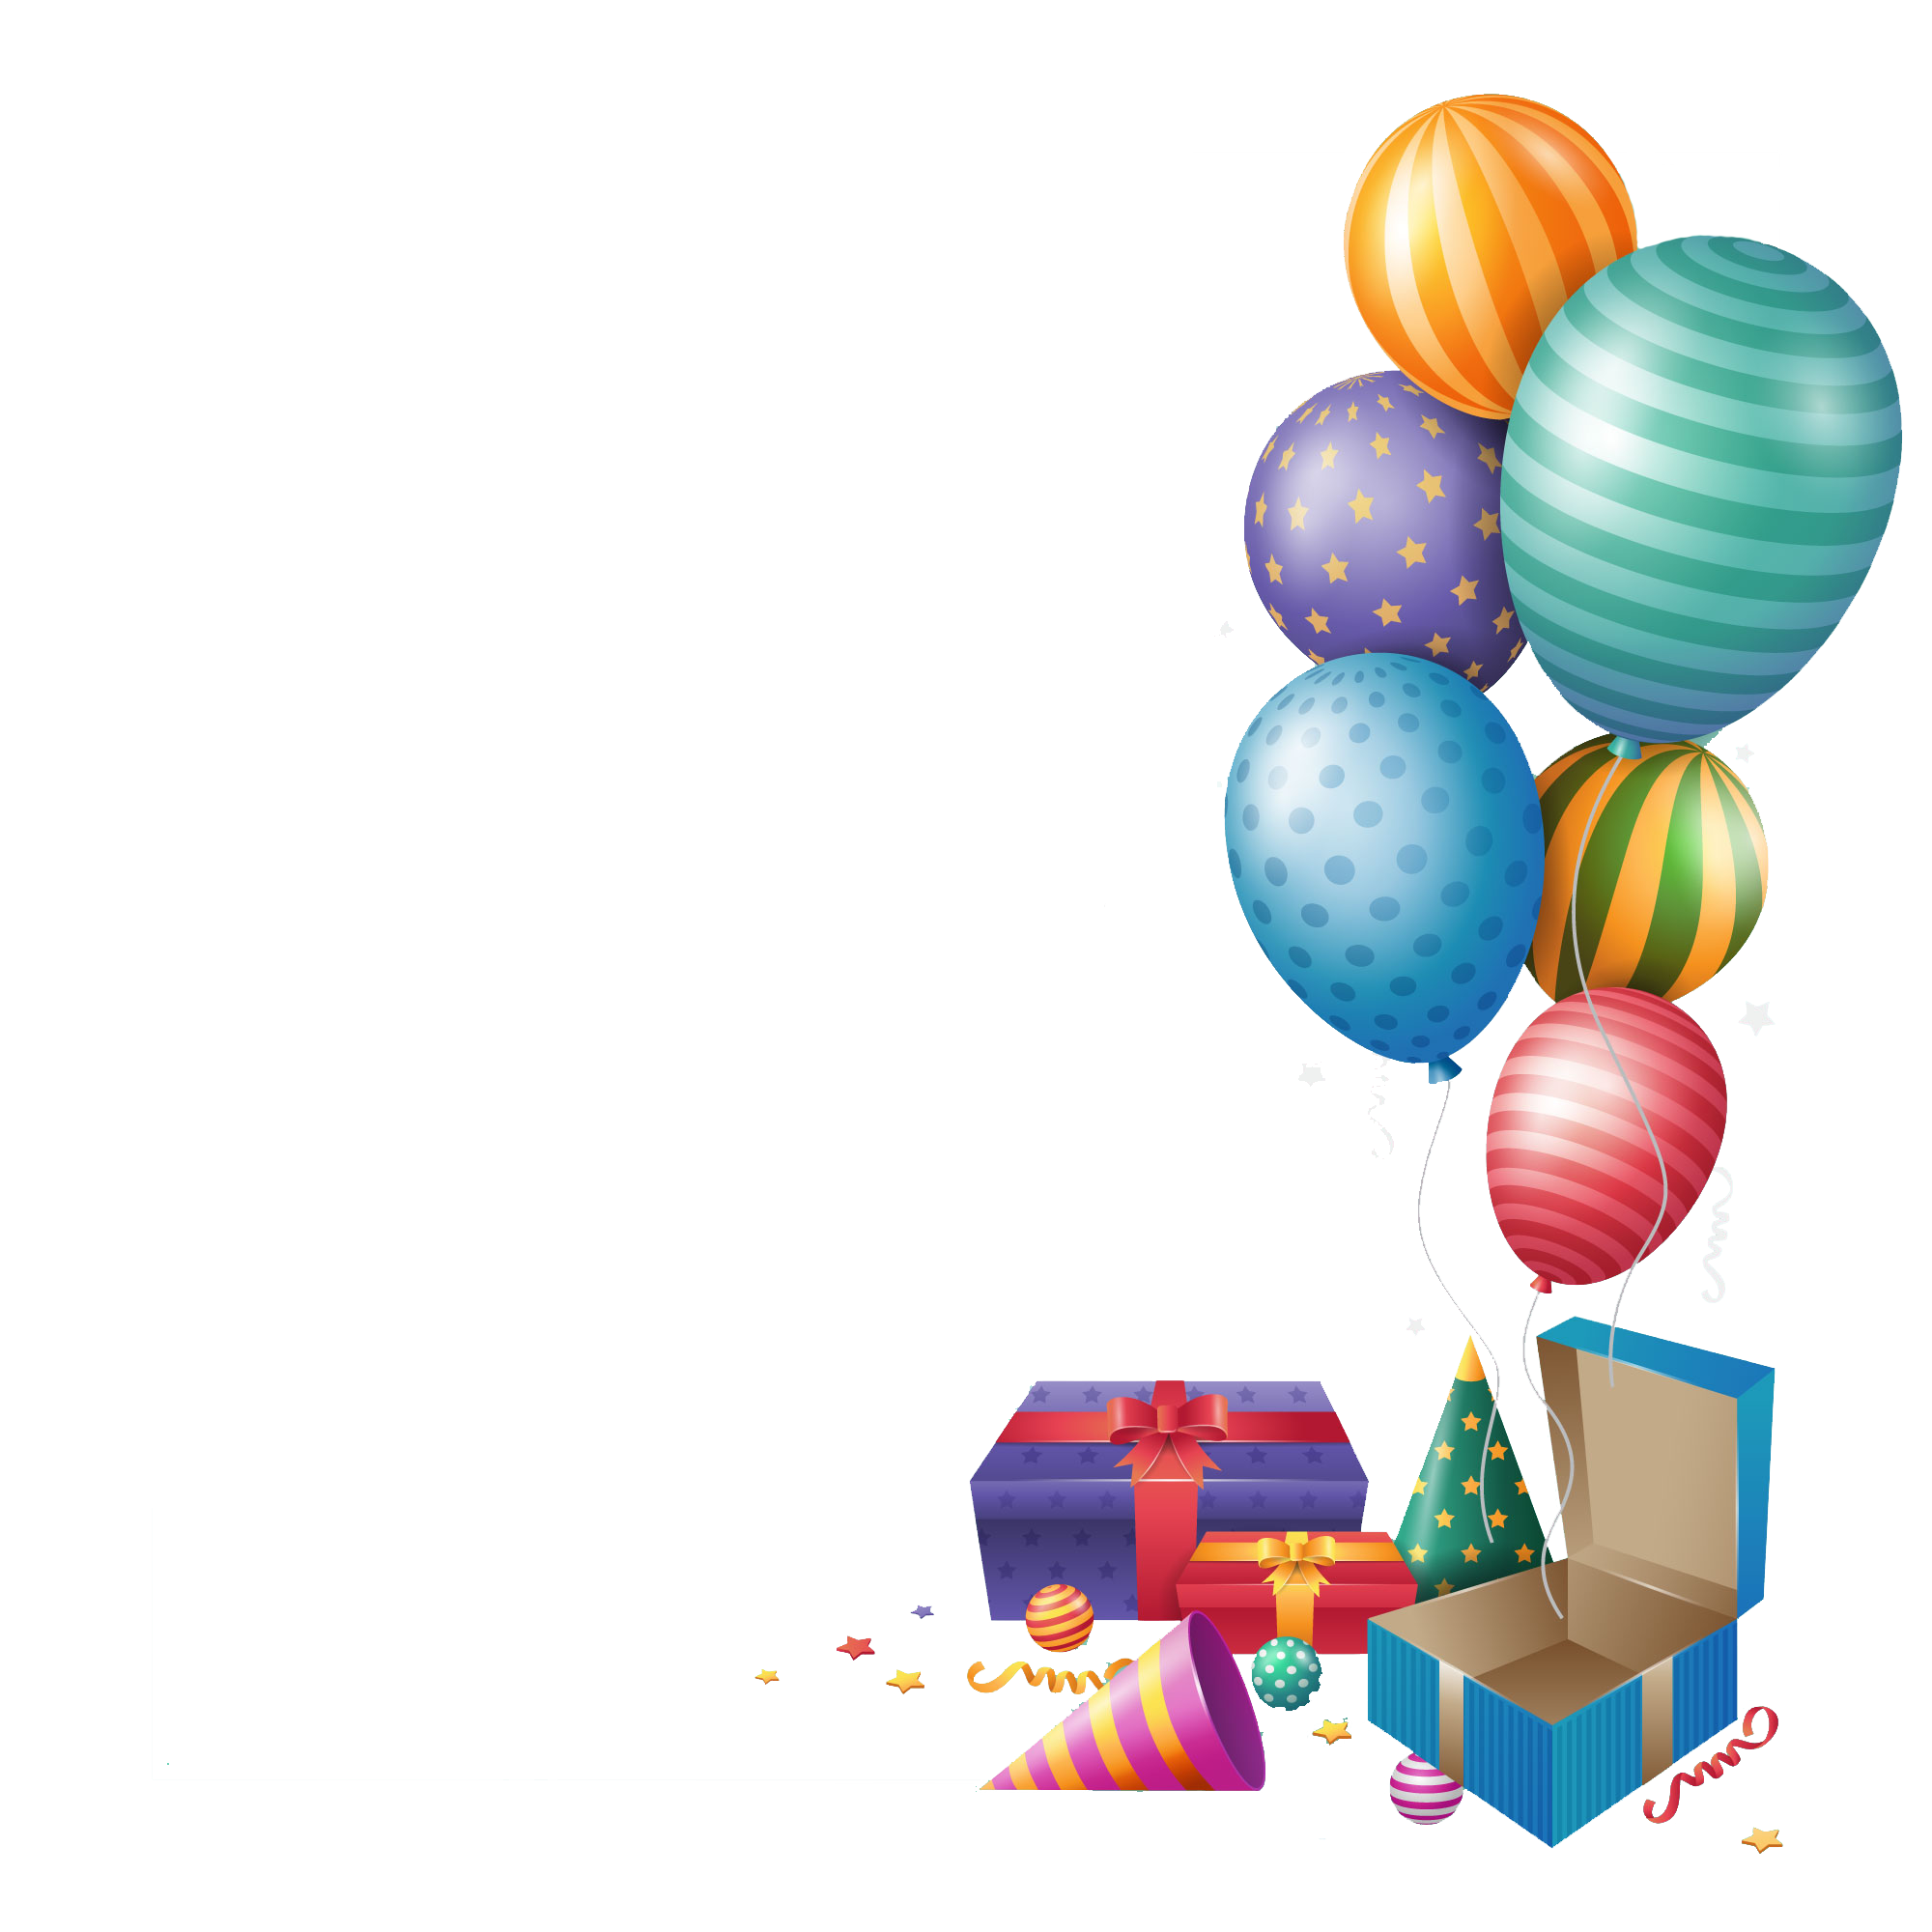 Happy balloons gift peoplepng. Birthday png images clip art transparent stock